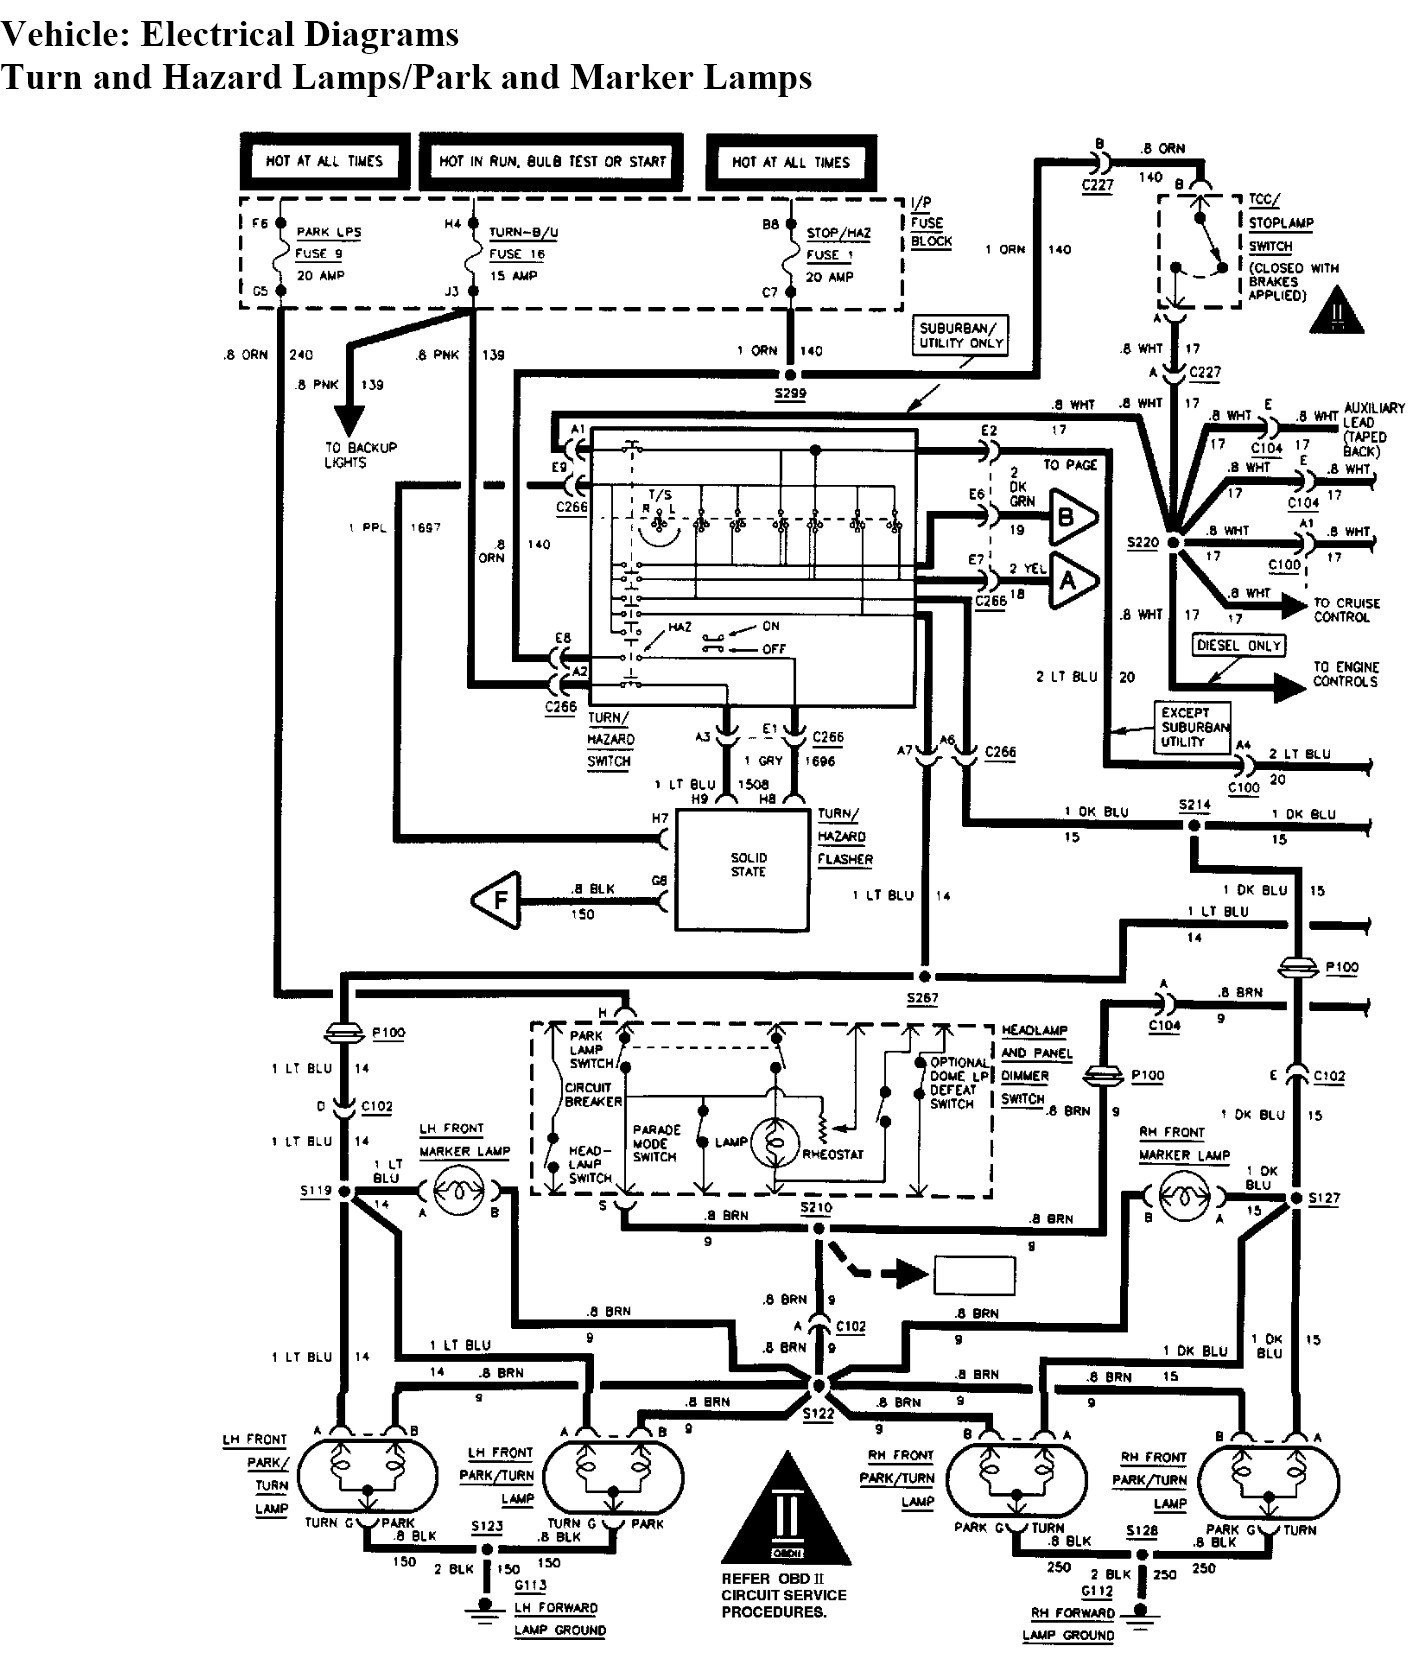 Jeep Grand Cherokee Wiring Diagram 2005 - Dodge Durango Fuse Box -  toshiba.yenpancane.jeanjaures37.fr | 2005 Jeep Grand Cherokee Laredo Wiring Diagram |  | Wiring Diagram Resource